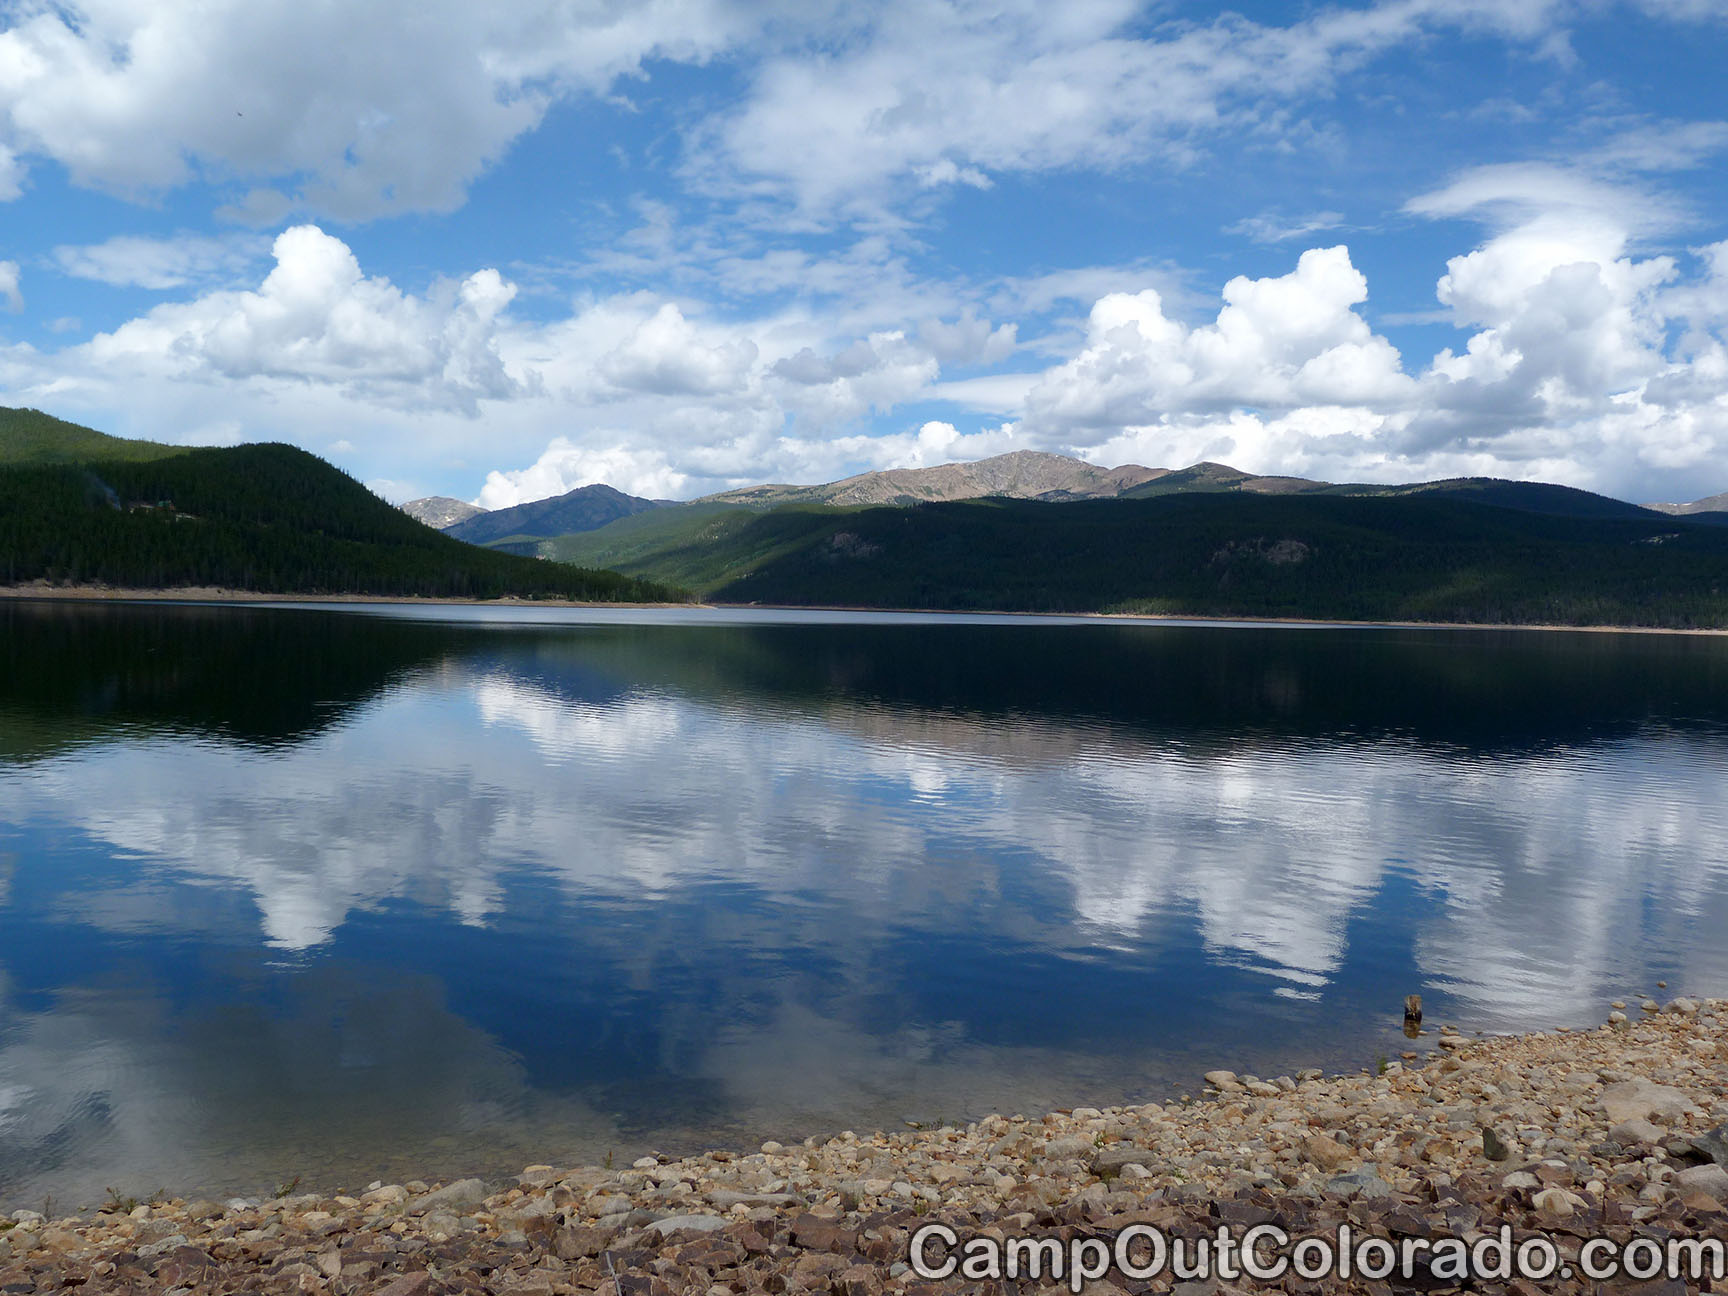 Camp-out-colorado-turquoise-lake-reflect